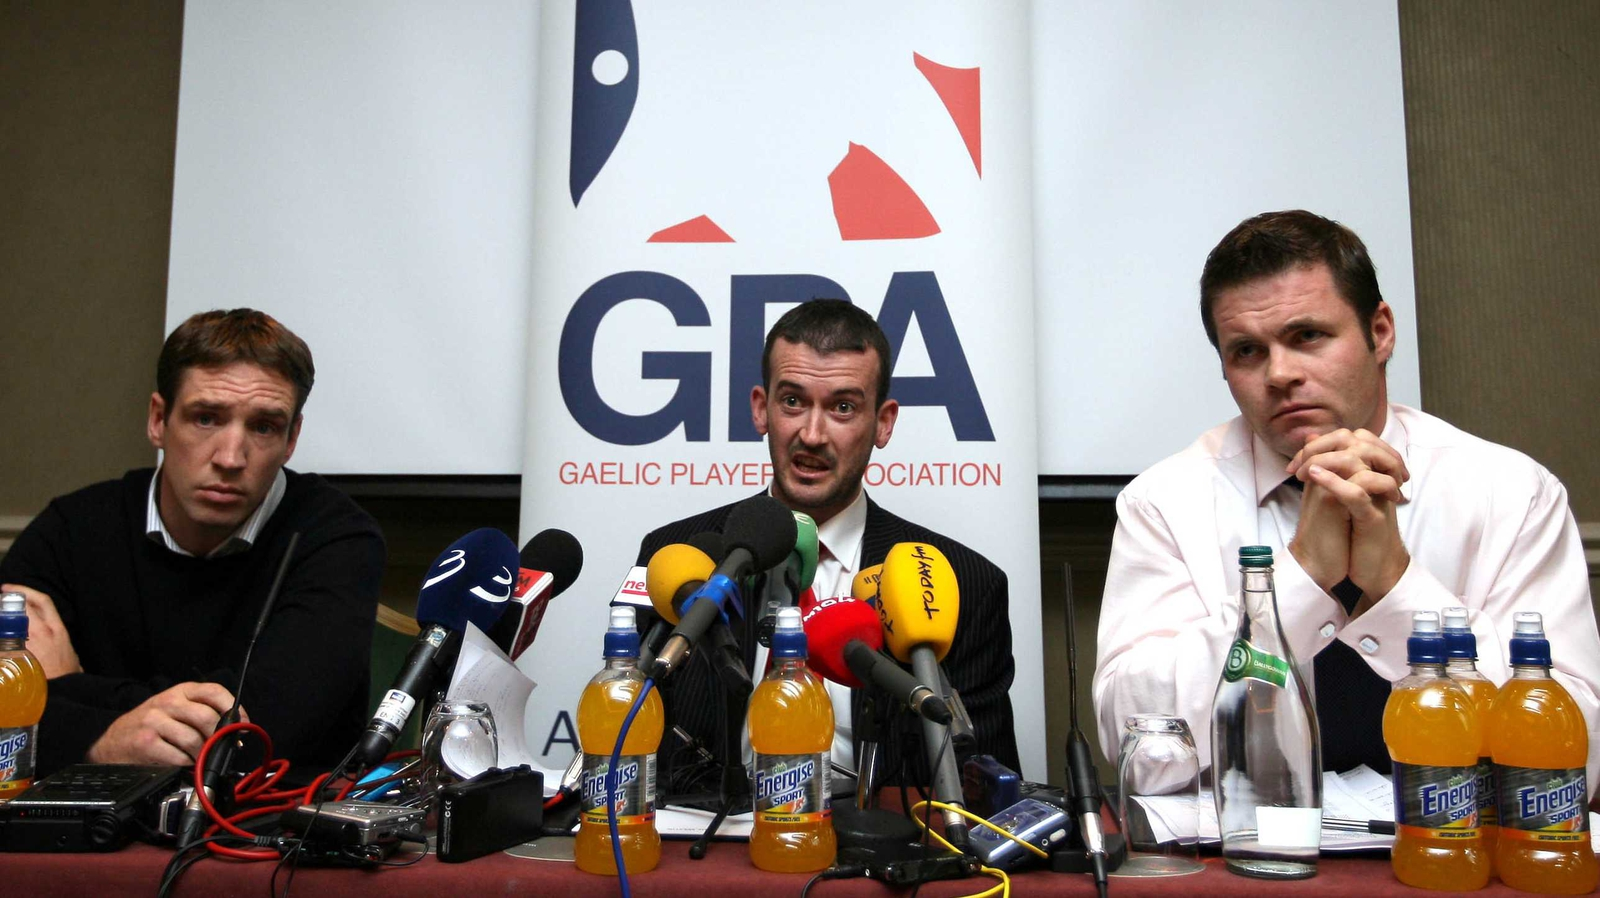 Image - Cusack (centre) with Kieran McGeeney (l) and Dessie Farrell (r) at a GPA media conference in 2007